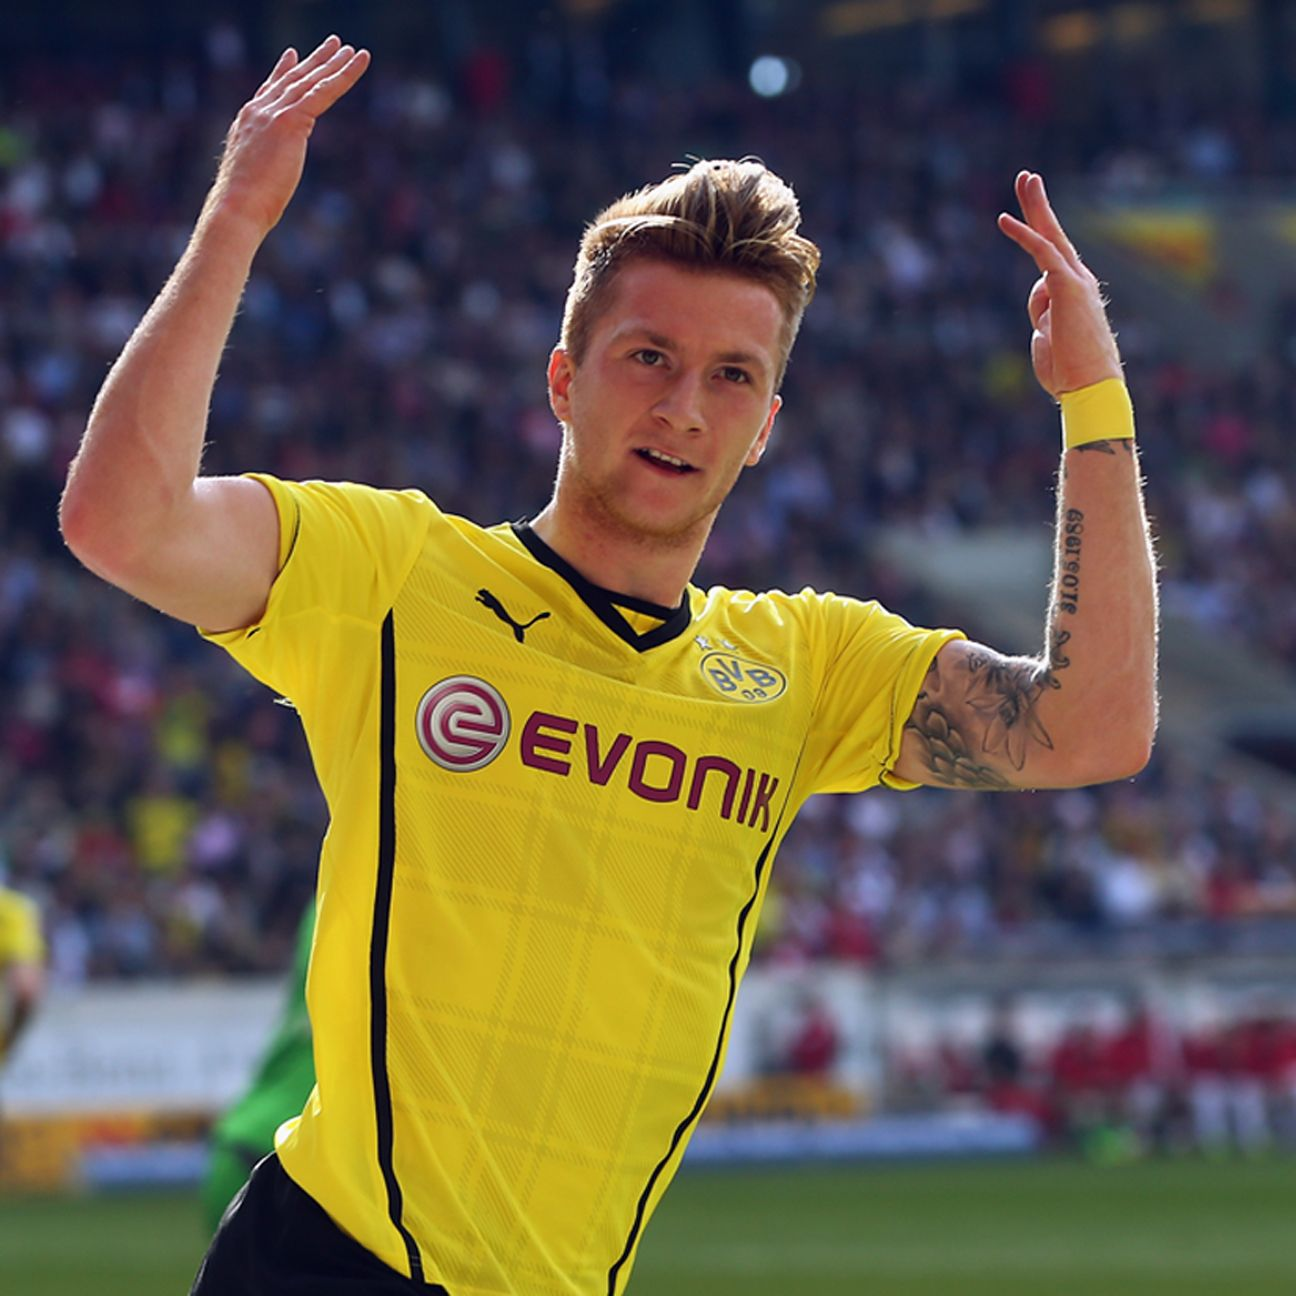 Marco Reus returned to Borussia Dortmund in 2012 and helped lead the team to the 2013 Champions League final.